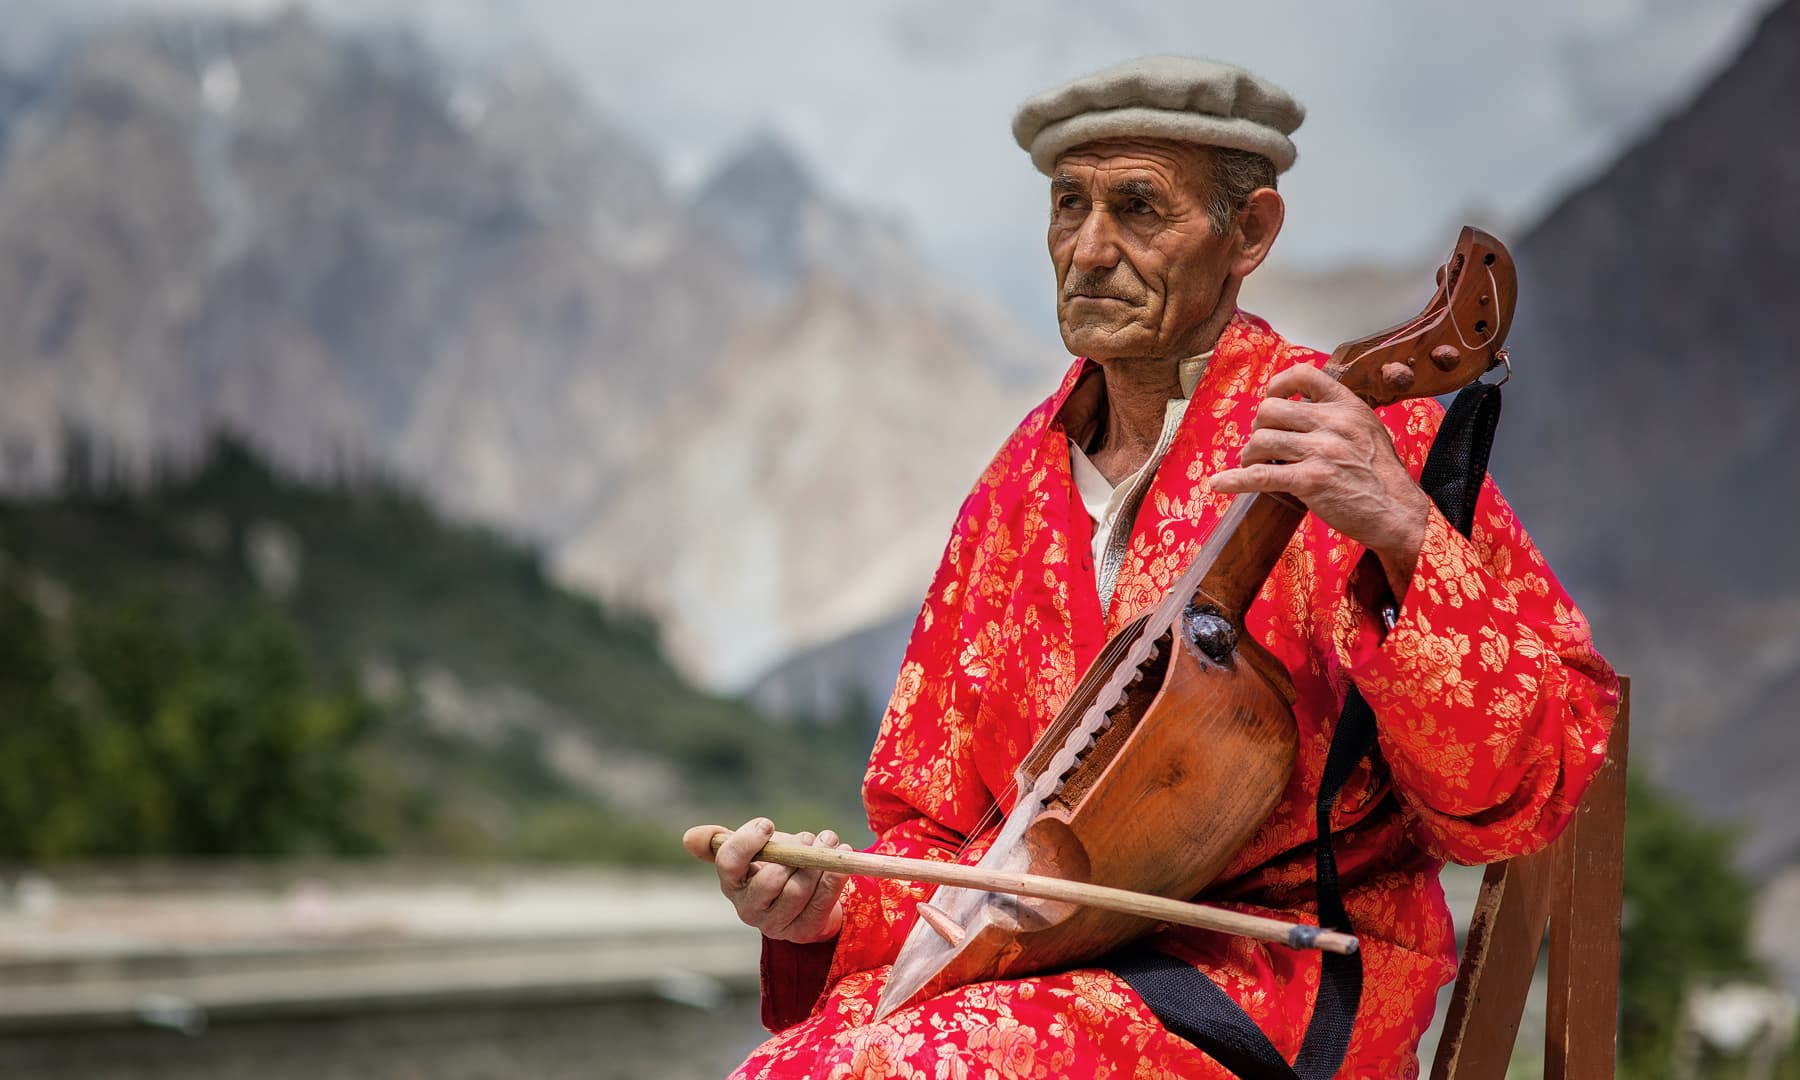 A man plays the rabab with full concentration.